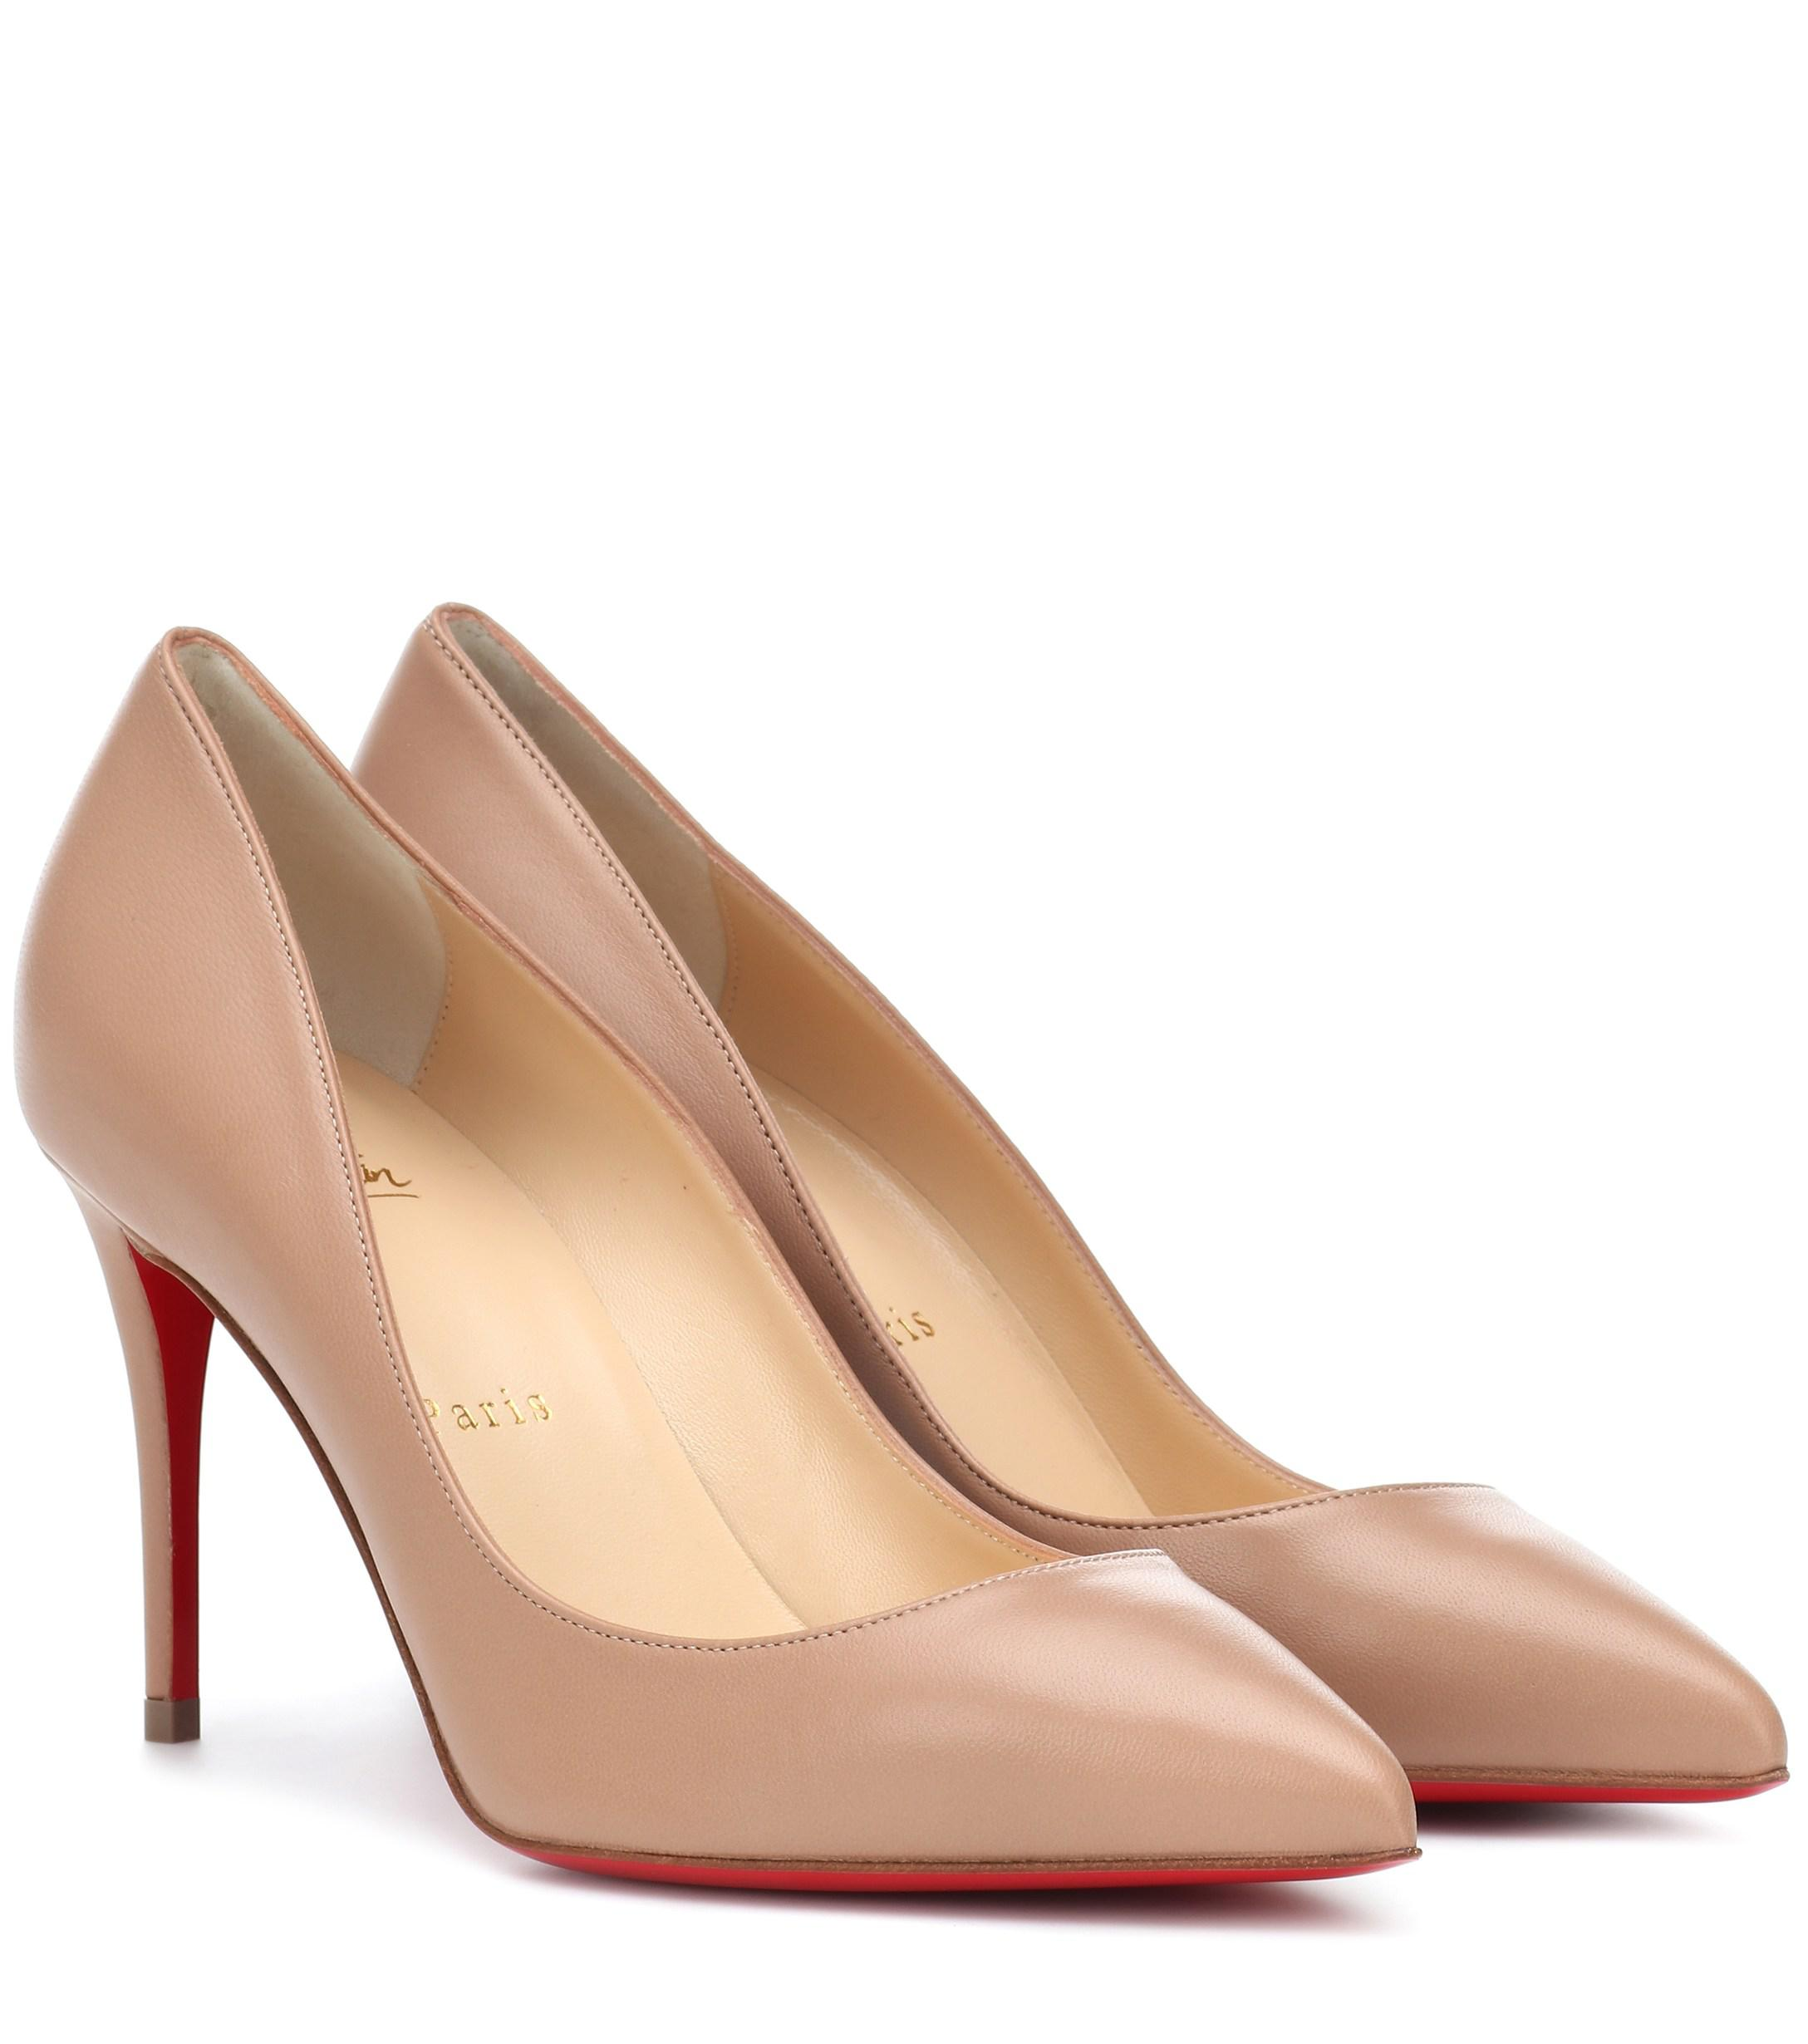 7880c80ab9d5 Lyst - Christian Louboutin Pigalle Follies 85 Leather Pumps in Natural